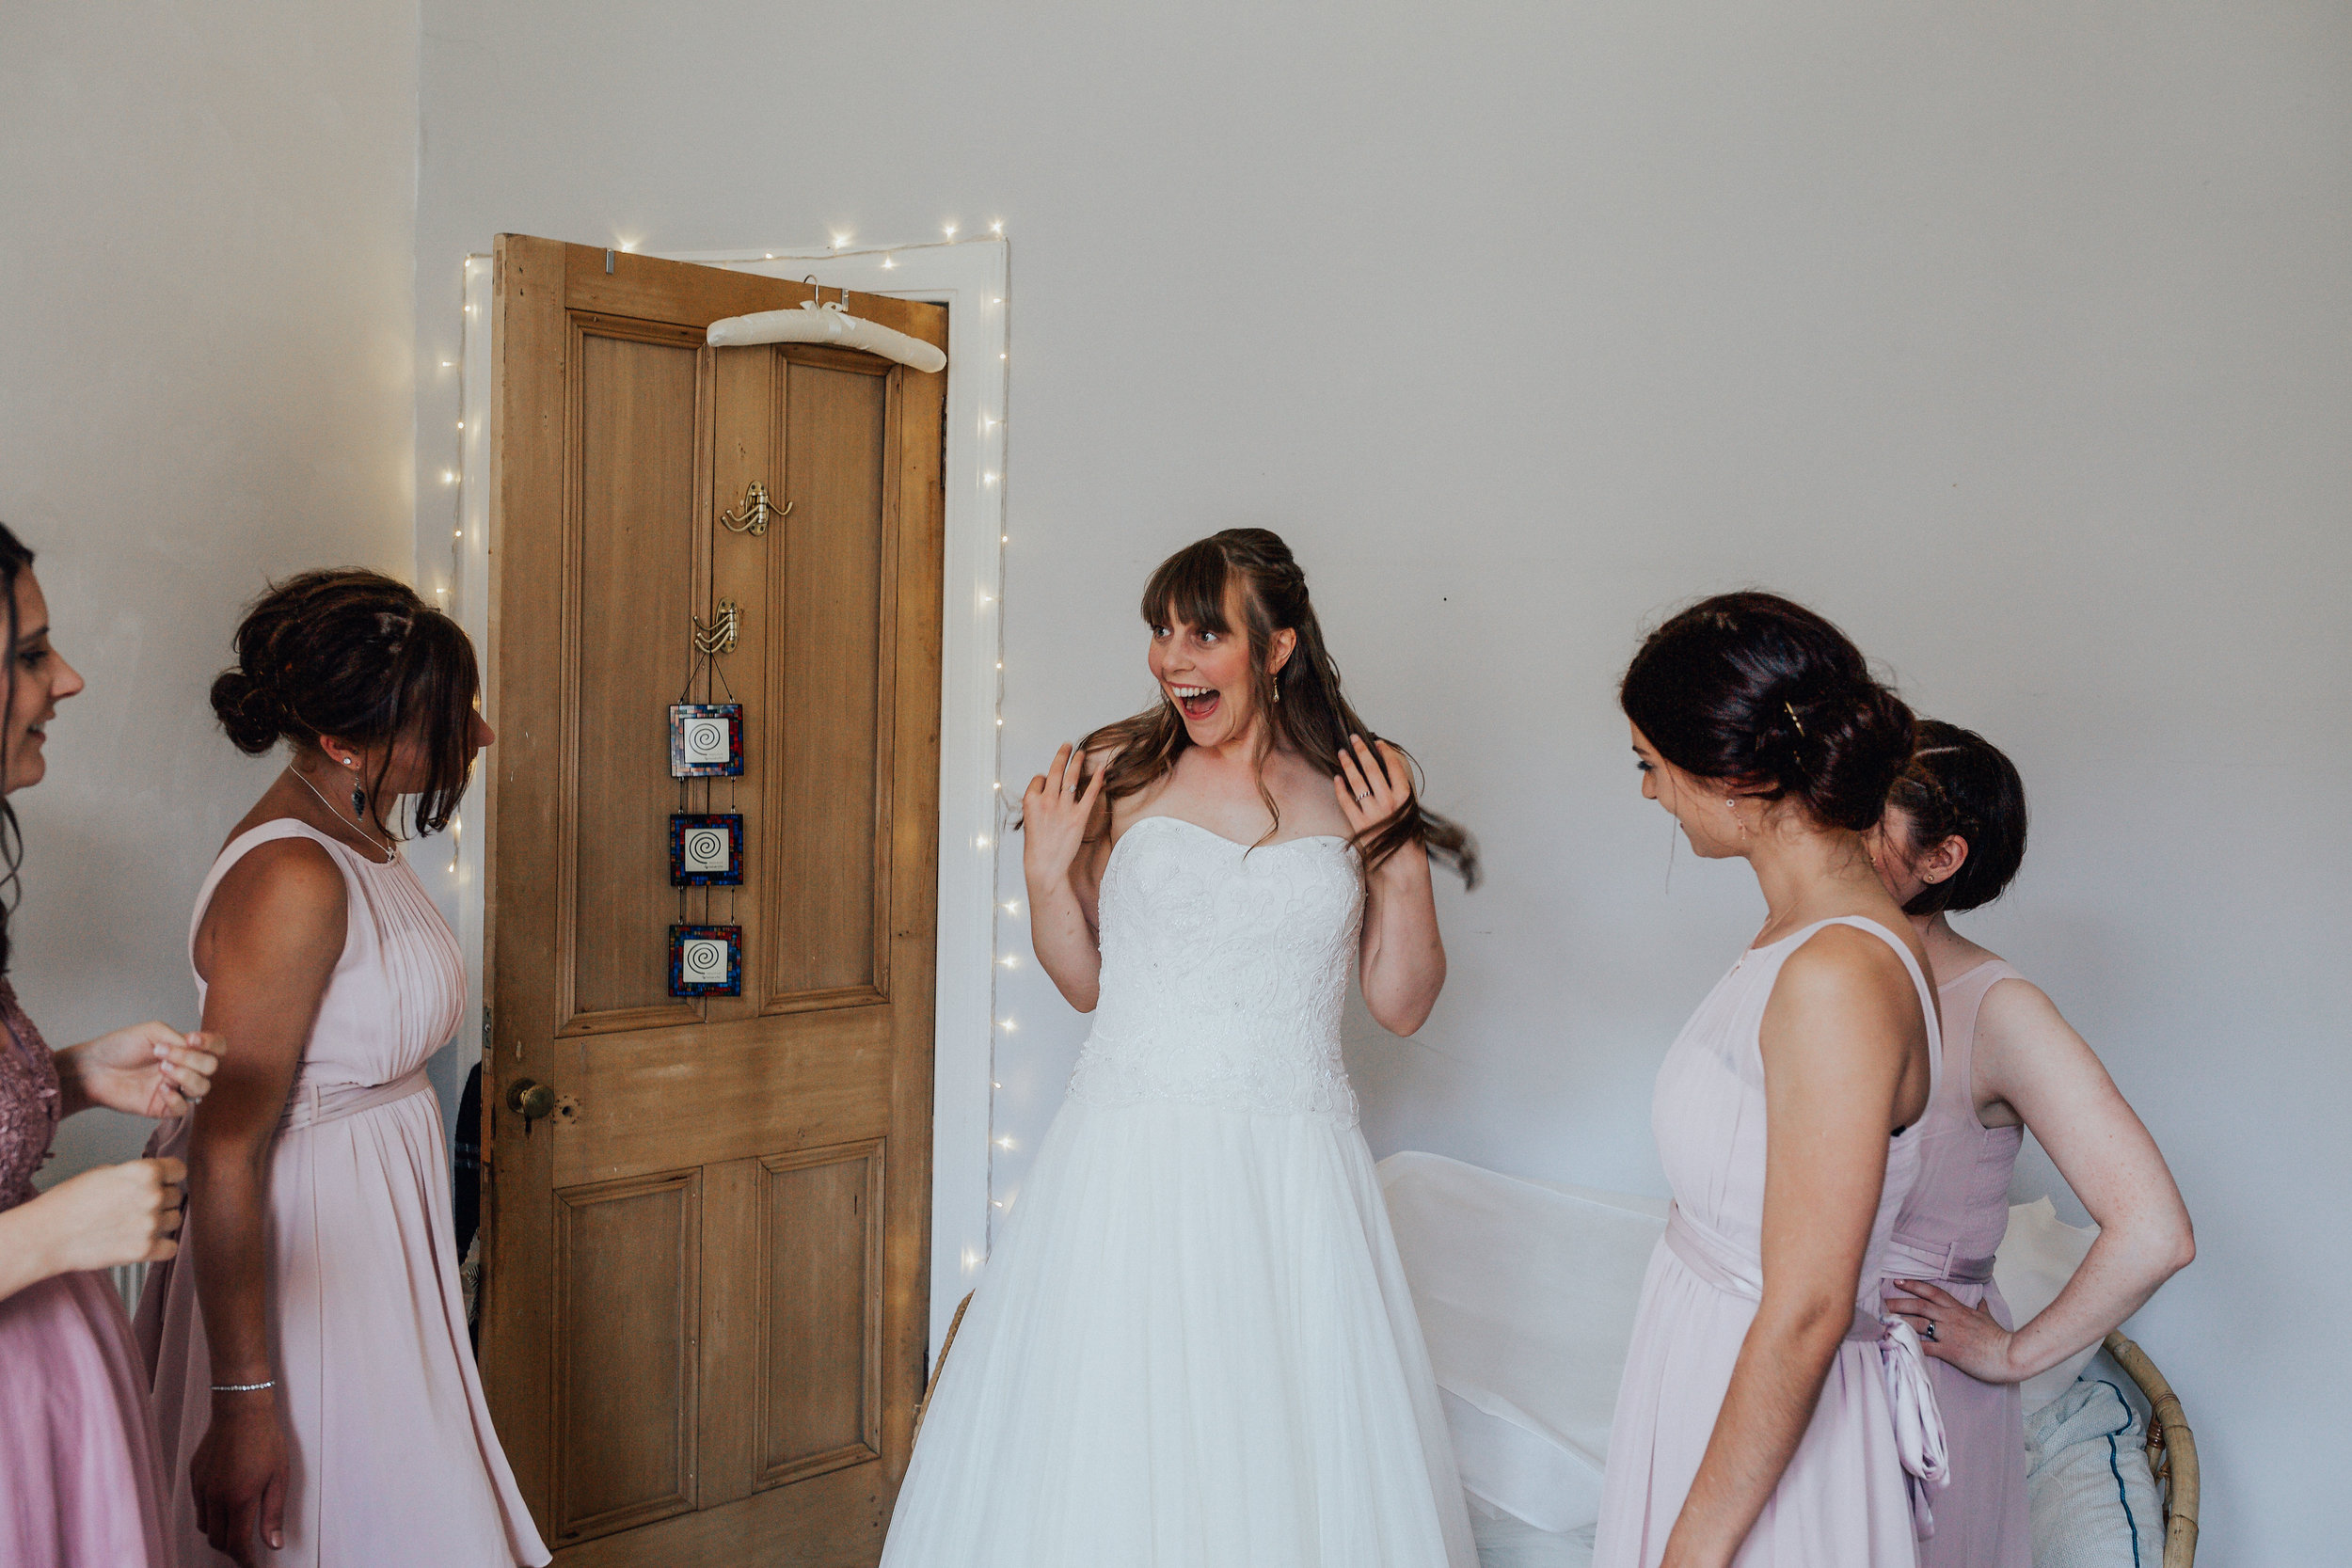 ALTERNATIVE_GLASGOW_CITY_WEDDING_PJ_PHILLIPS_PHOTOGRAPHY_WEDDING_PHOTOGRAPHY_30.jpg